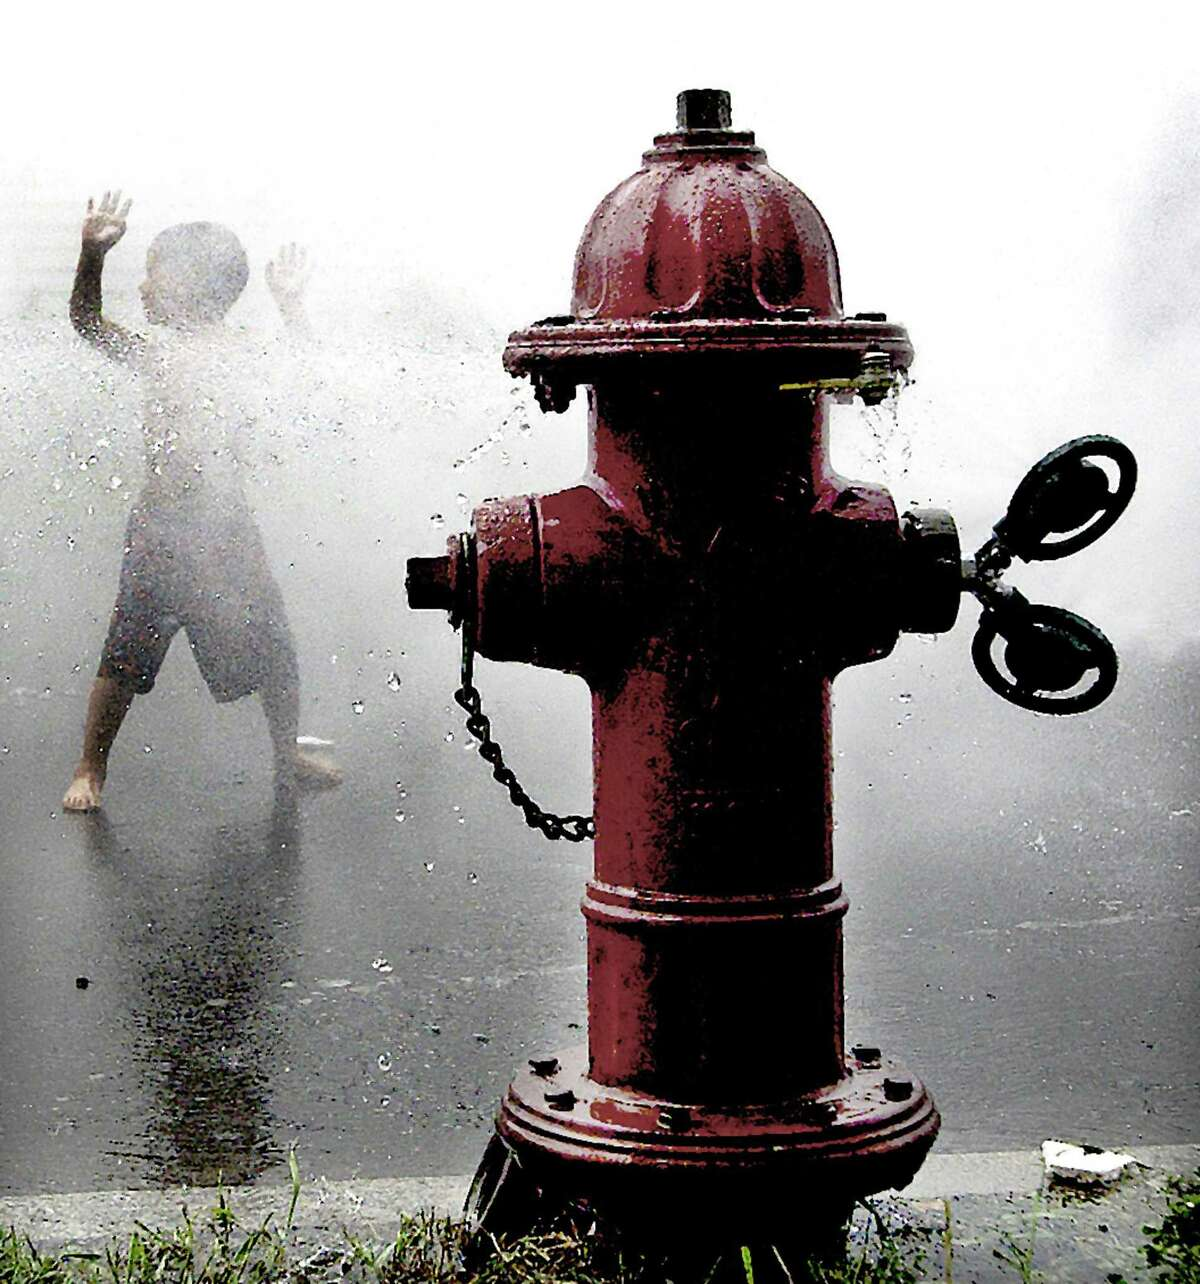 Hayd'n Santiago,4,, of Middletown, keeps cool running around the fire hydrant on Portland Street in Middletown in 2007. Catherine Avalone/The Middletown 7.11.07